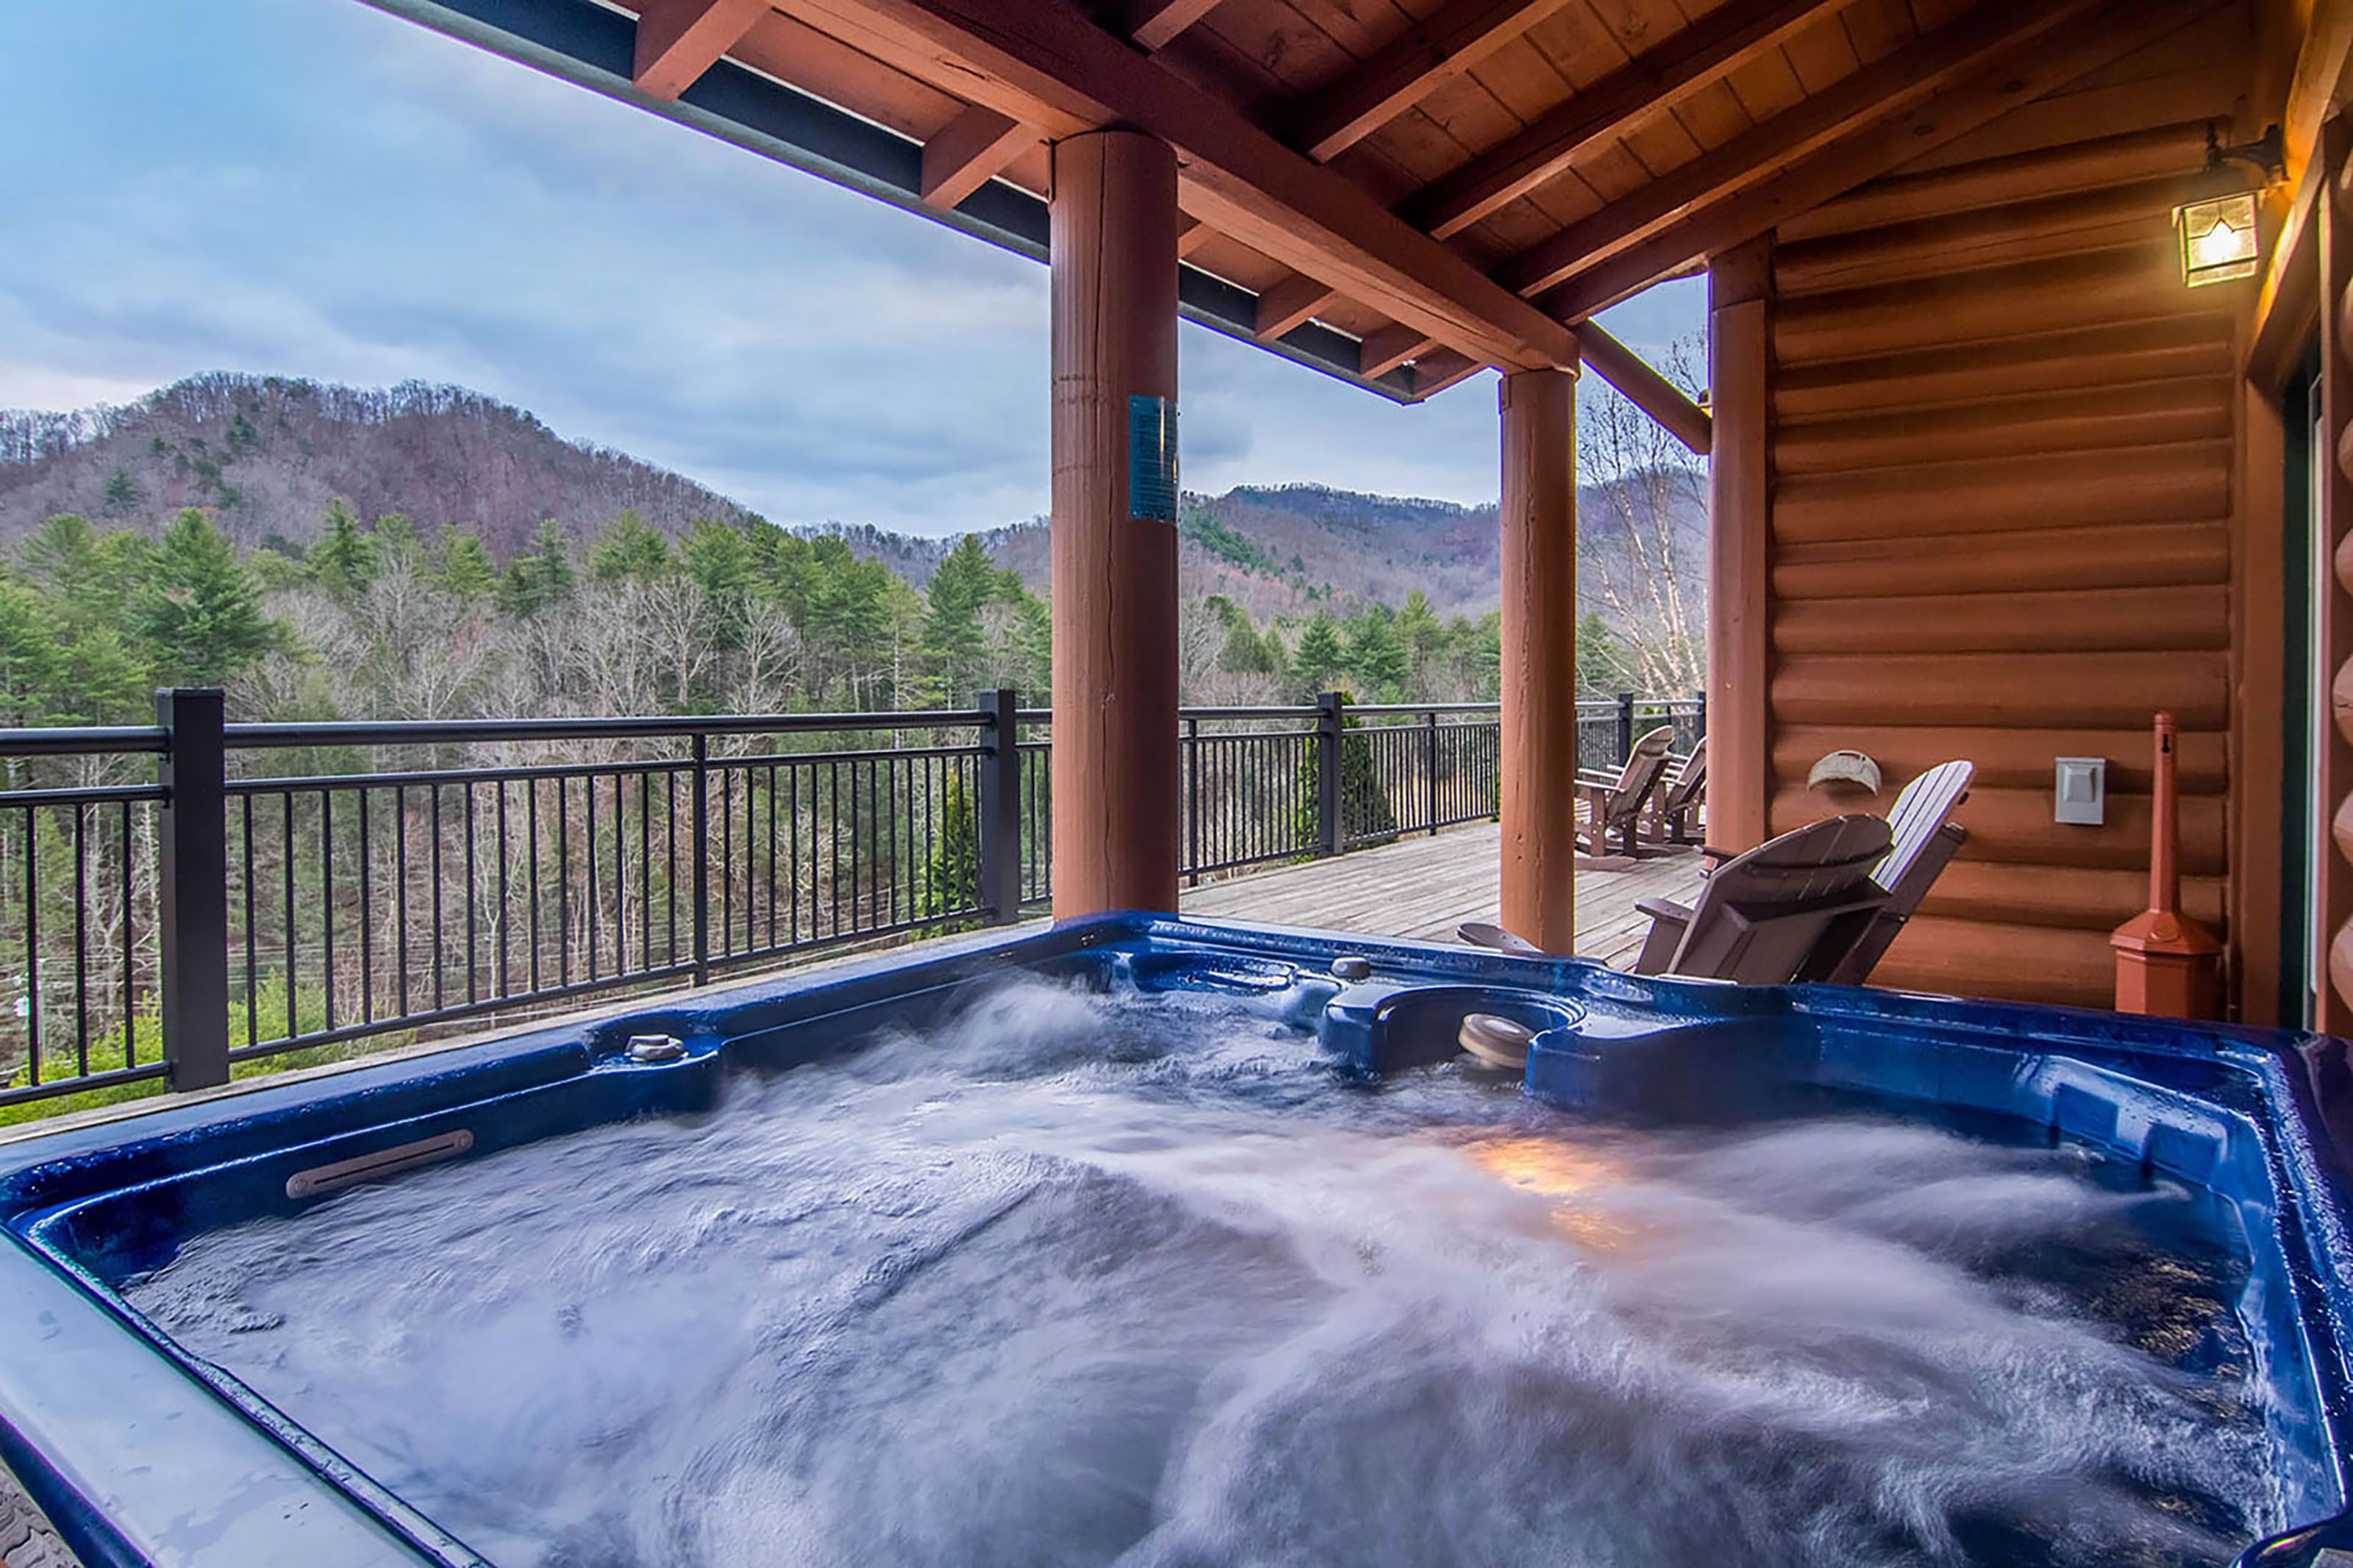 pigeon under gatlinburg luxury design bedroom best indoor pool home forge with cabin tn cabins rental picture in private